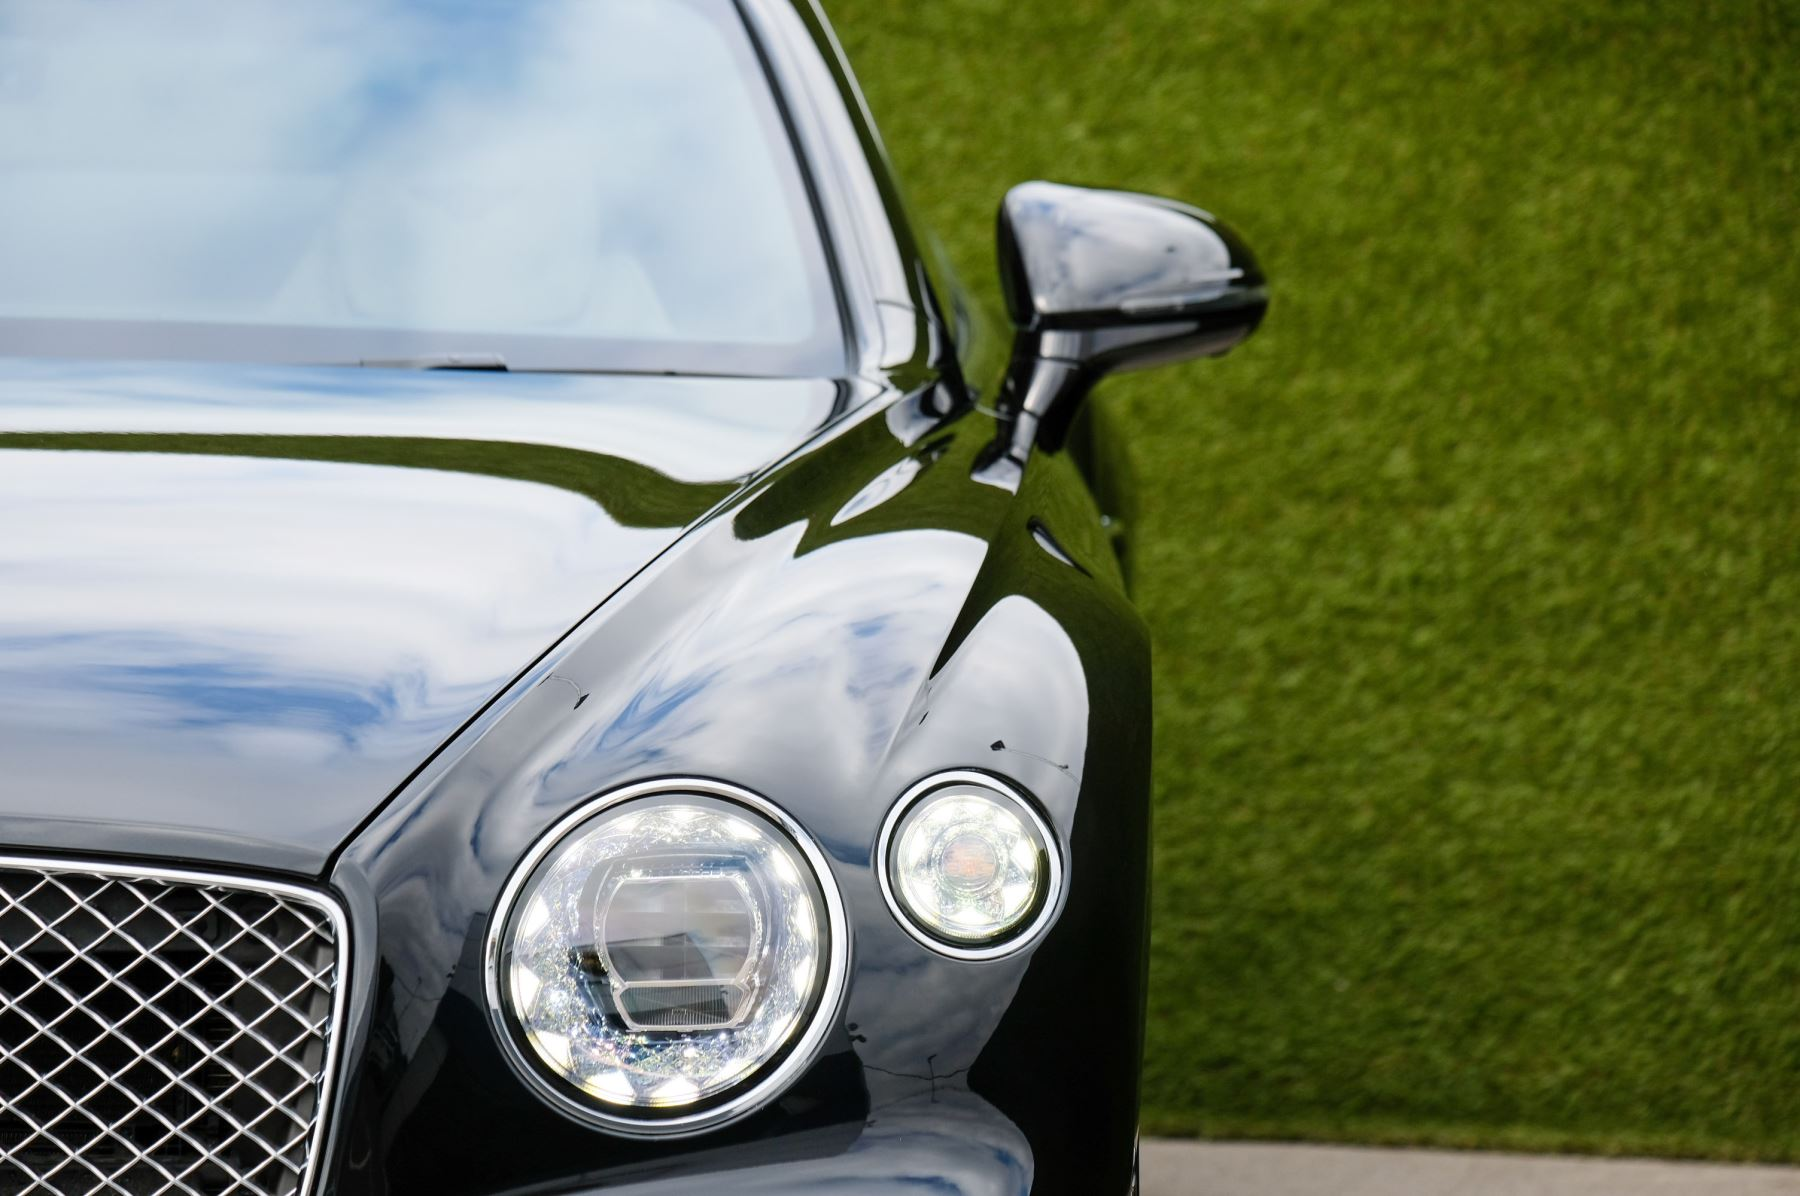 Bentley Continental GT 6.0 W12 1st Edition - Comfort Seating - Touring Specification image 6